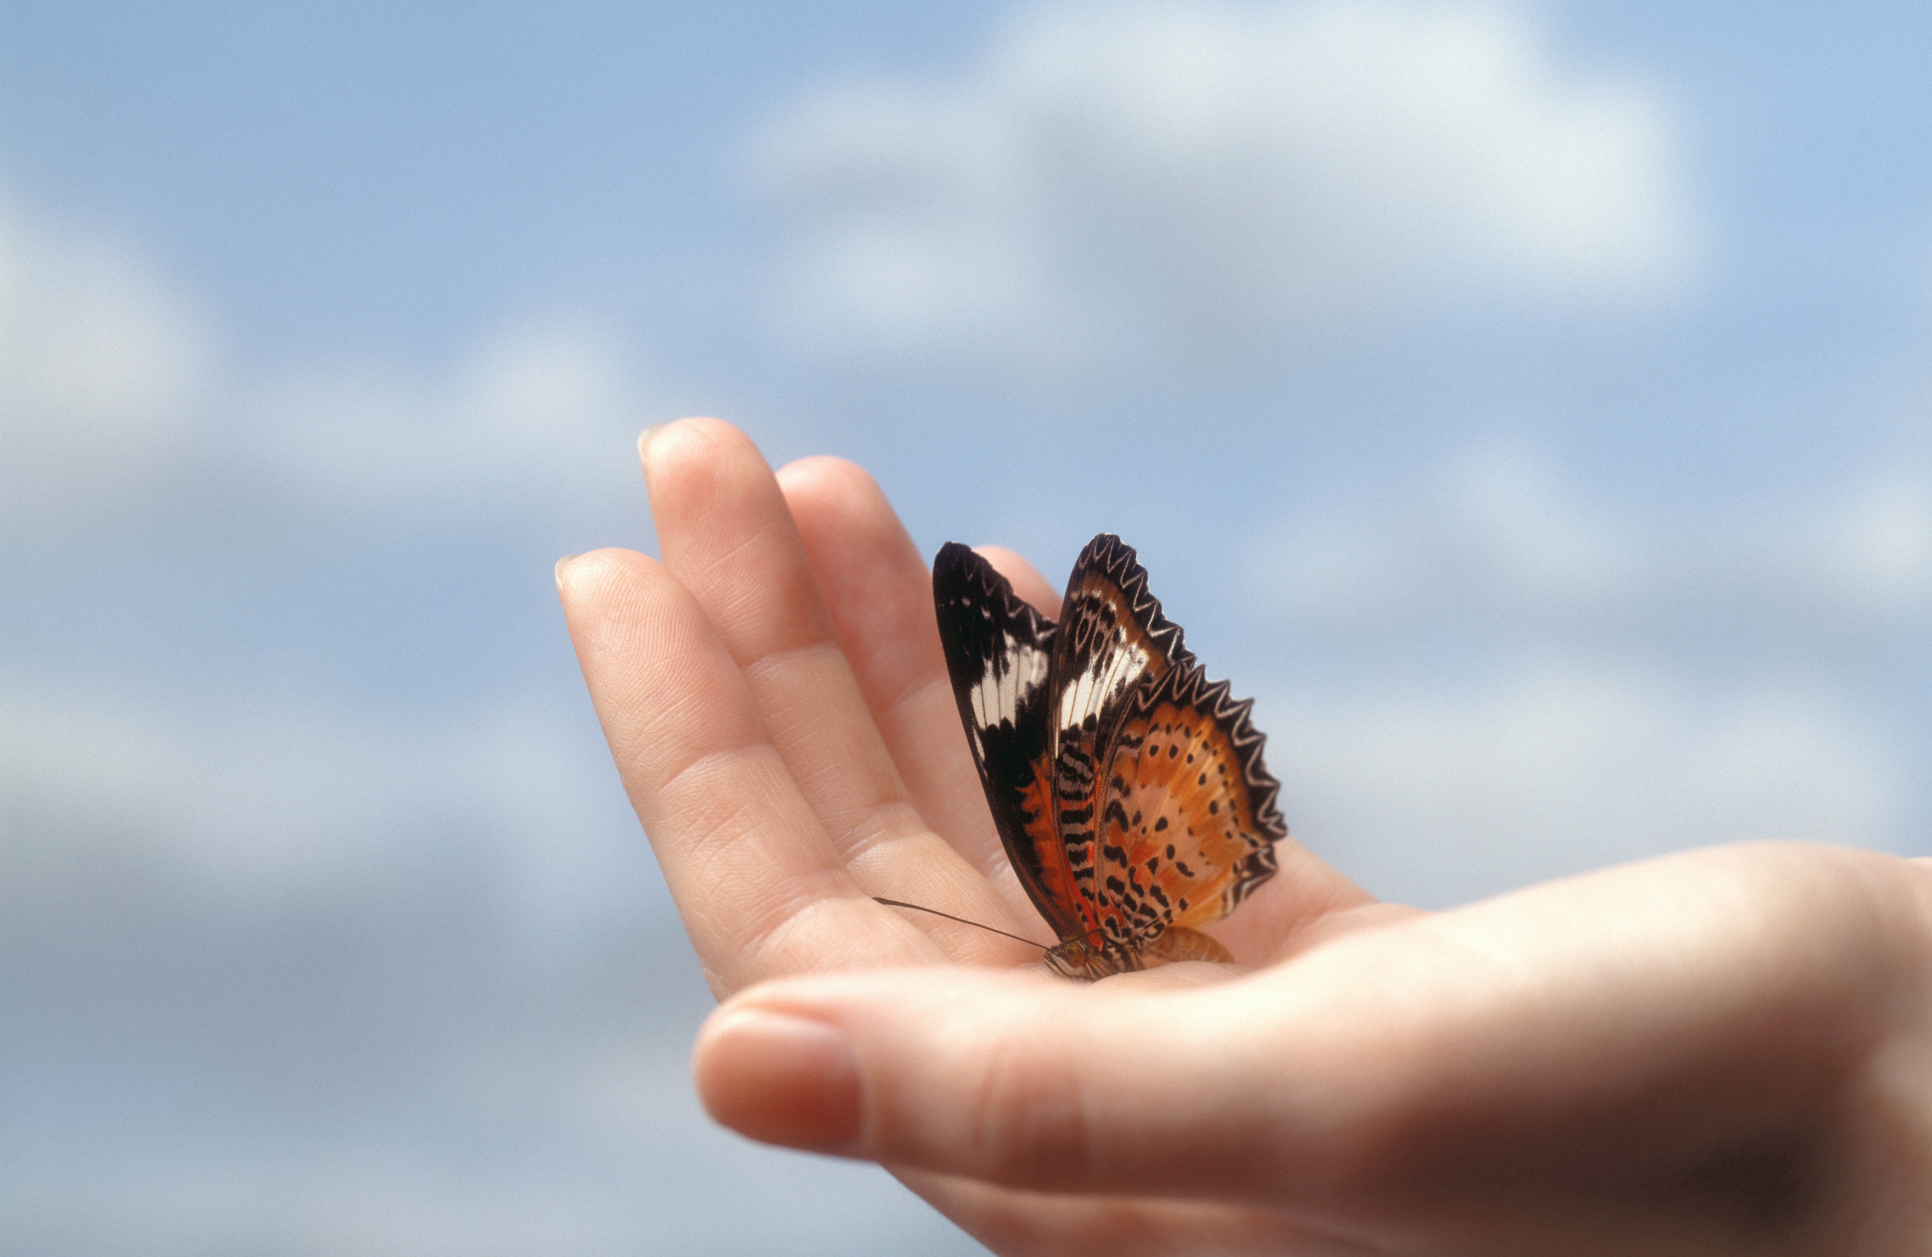 Uncategorized Butterfly Hand butterfly in hand the humble i published december 11 2014 at 1932 1257 butterfly